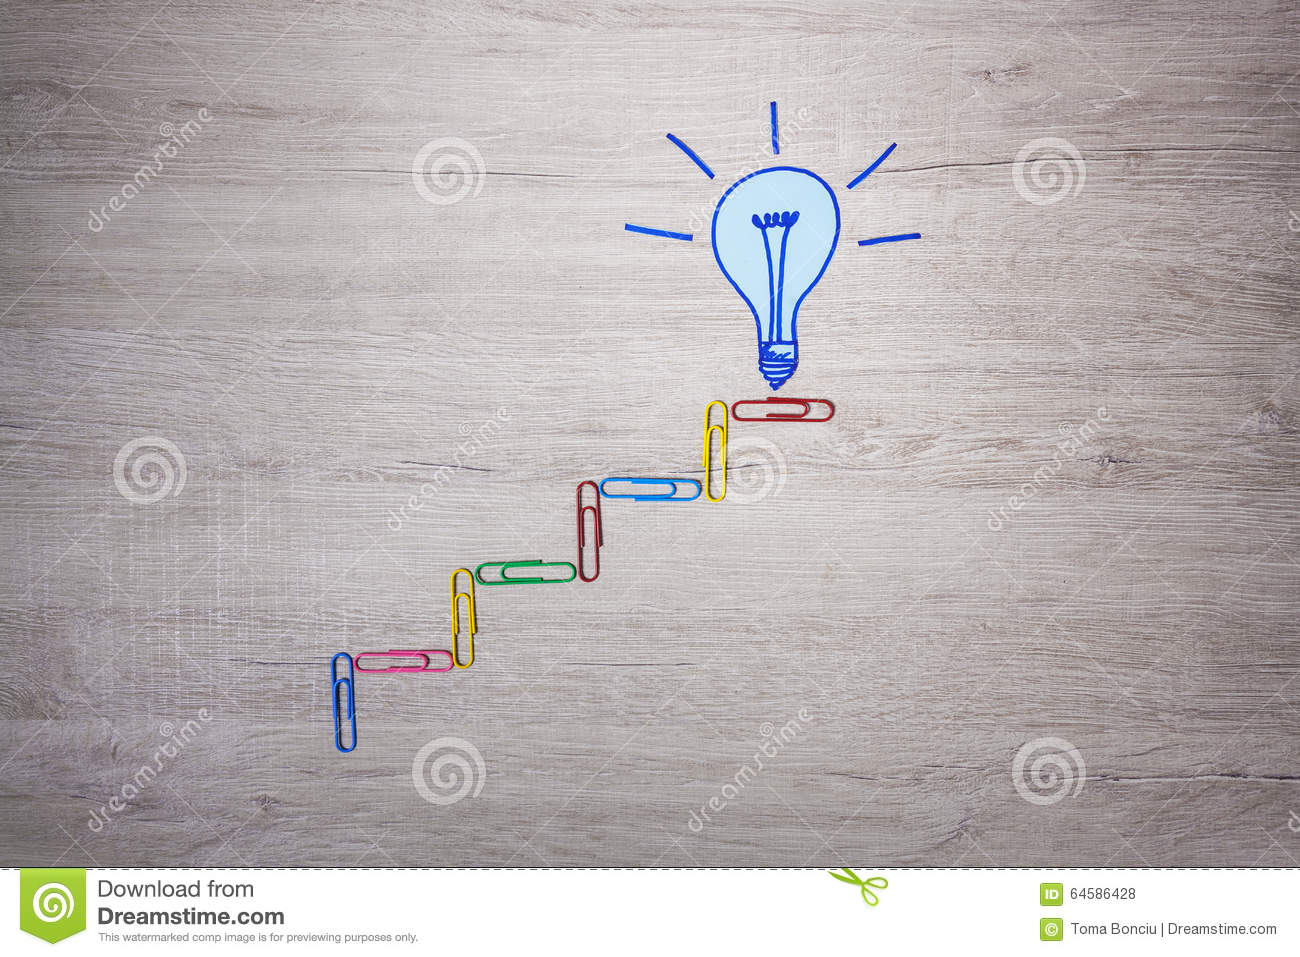 Stock symbol for staples choice image symbol and sign ideas light bulb symbol and colored staples on office desk stock photo royalty free stock photo buycottarizona biocorpaavc